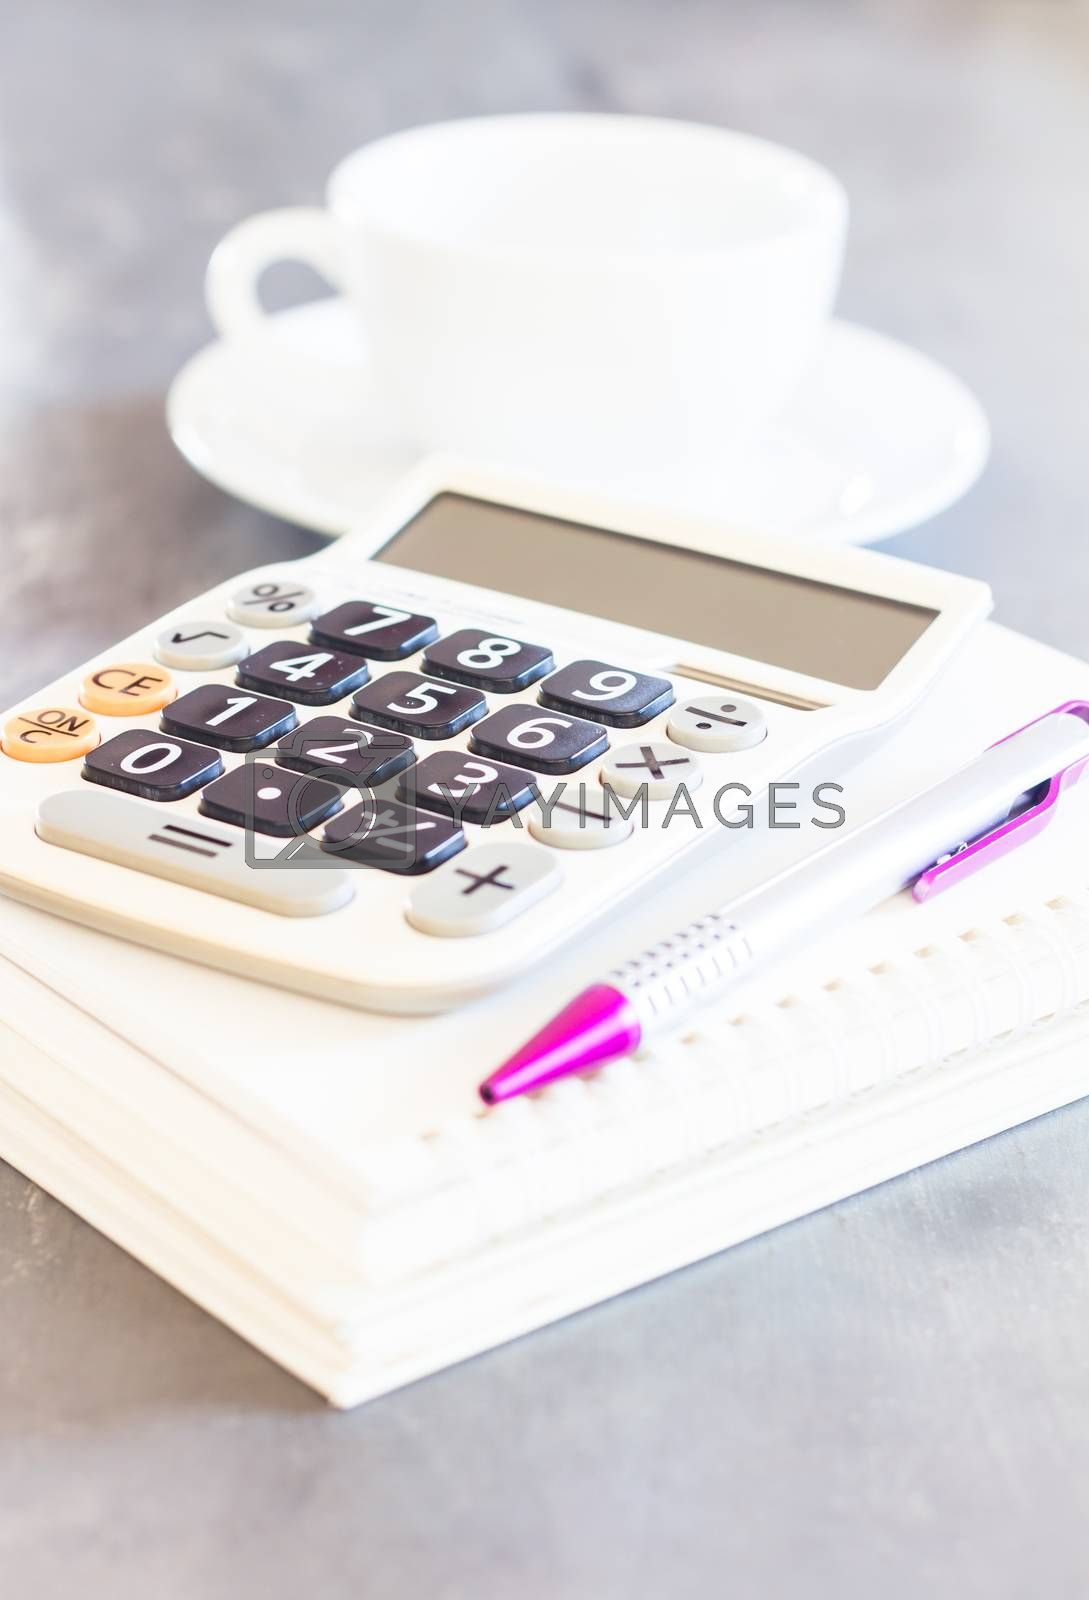 Royalty free image of Calculator, pen and notepad for notes by punsayaporn